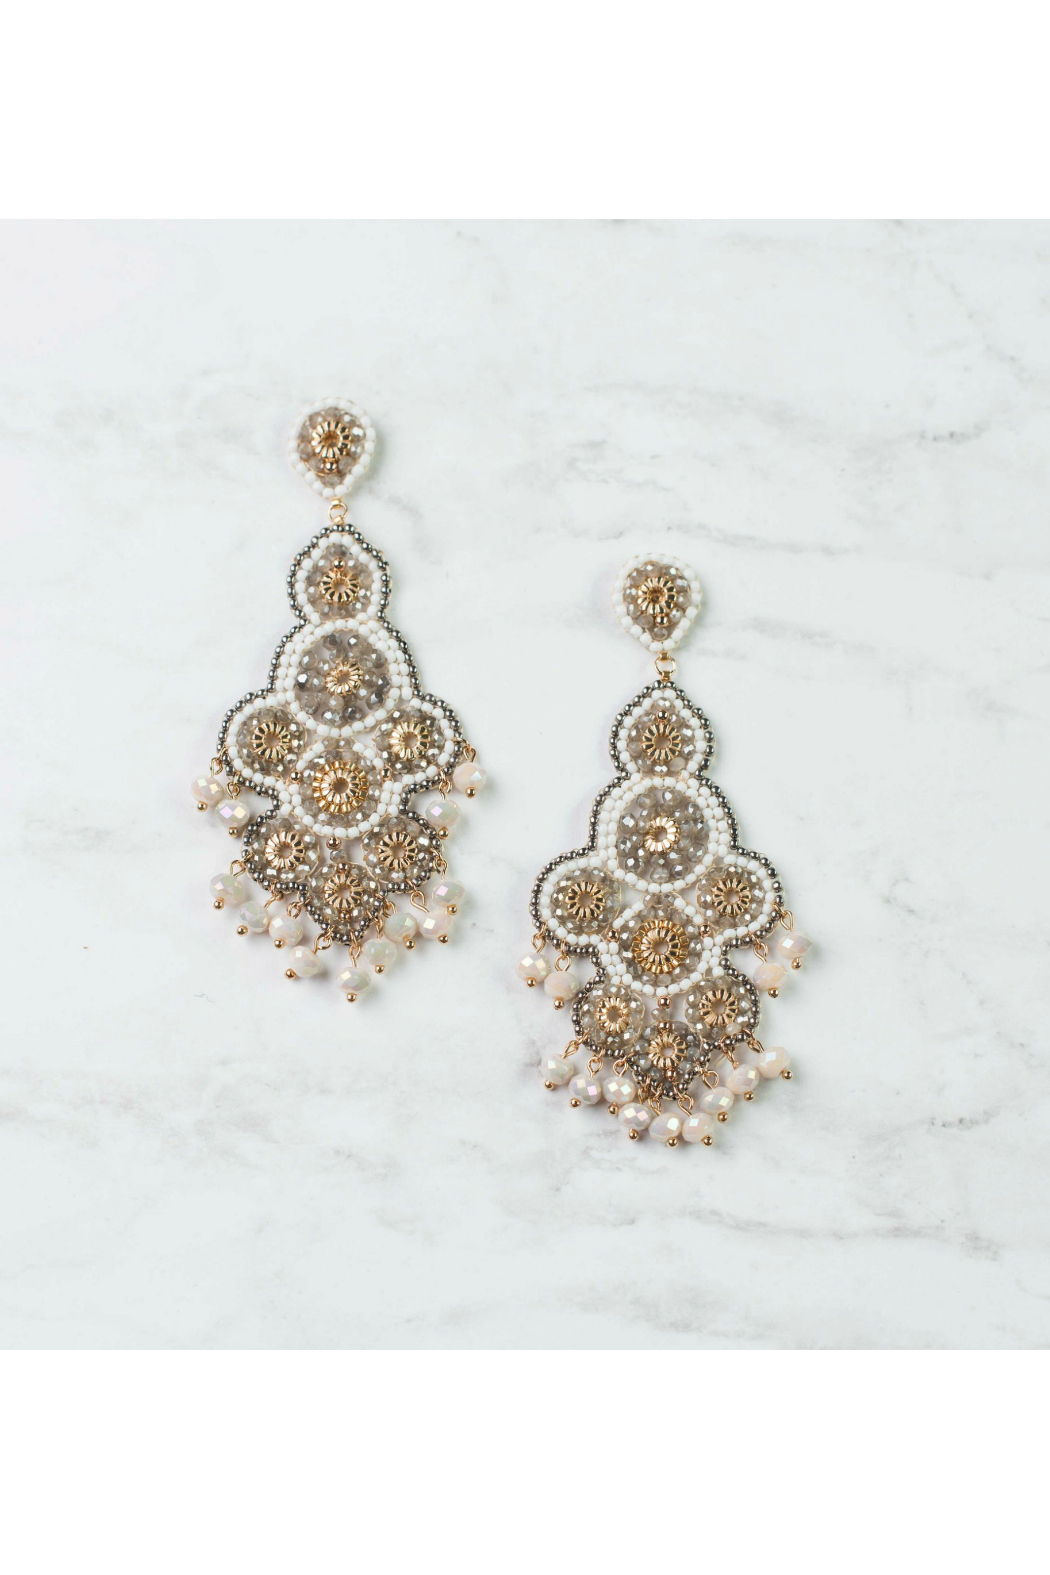 Rush by Denis & Charles Statement Beaded Earring w Drops - Main Image